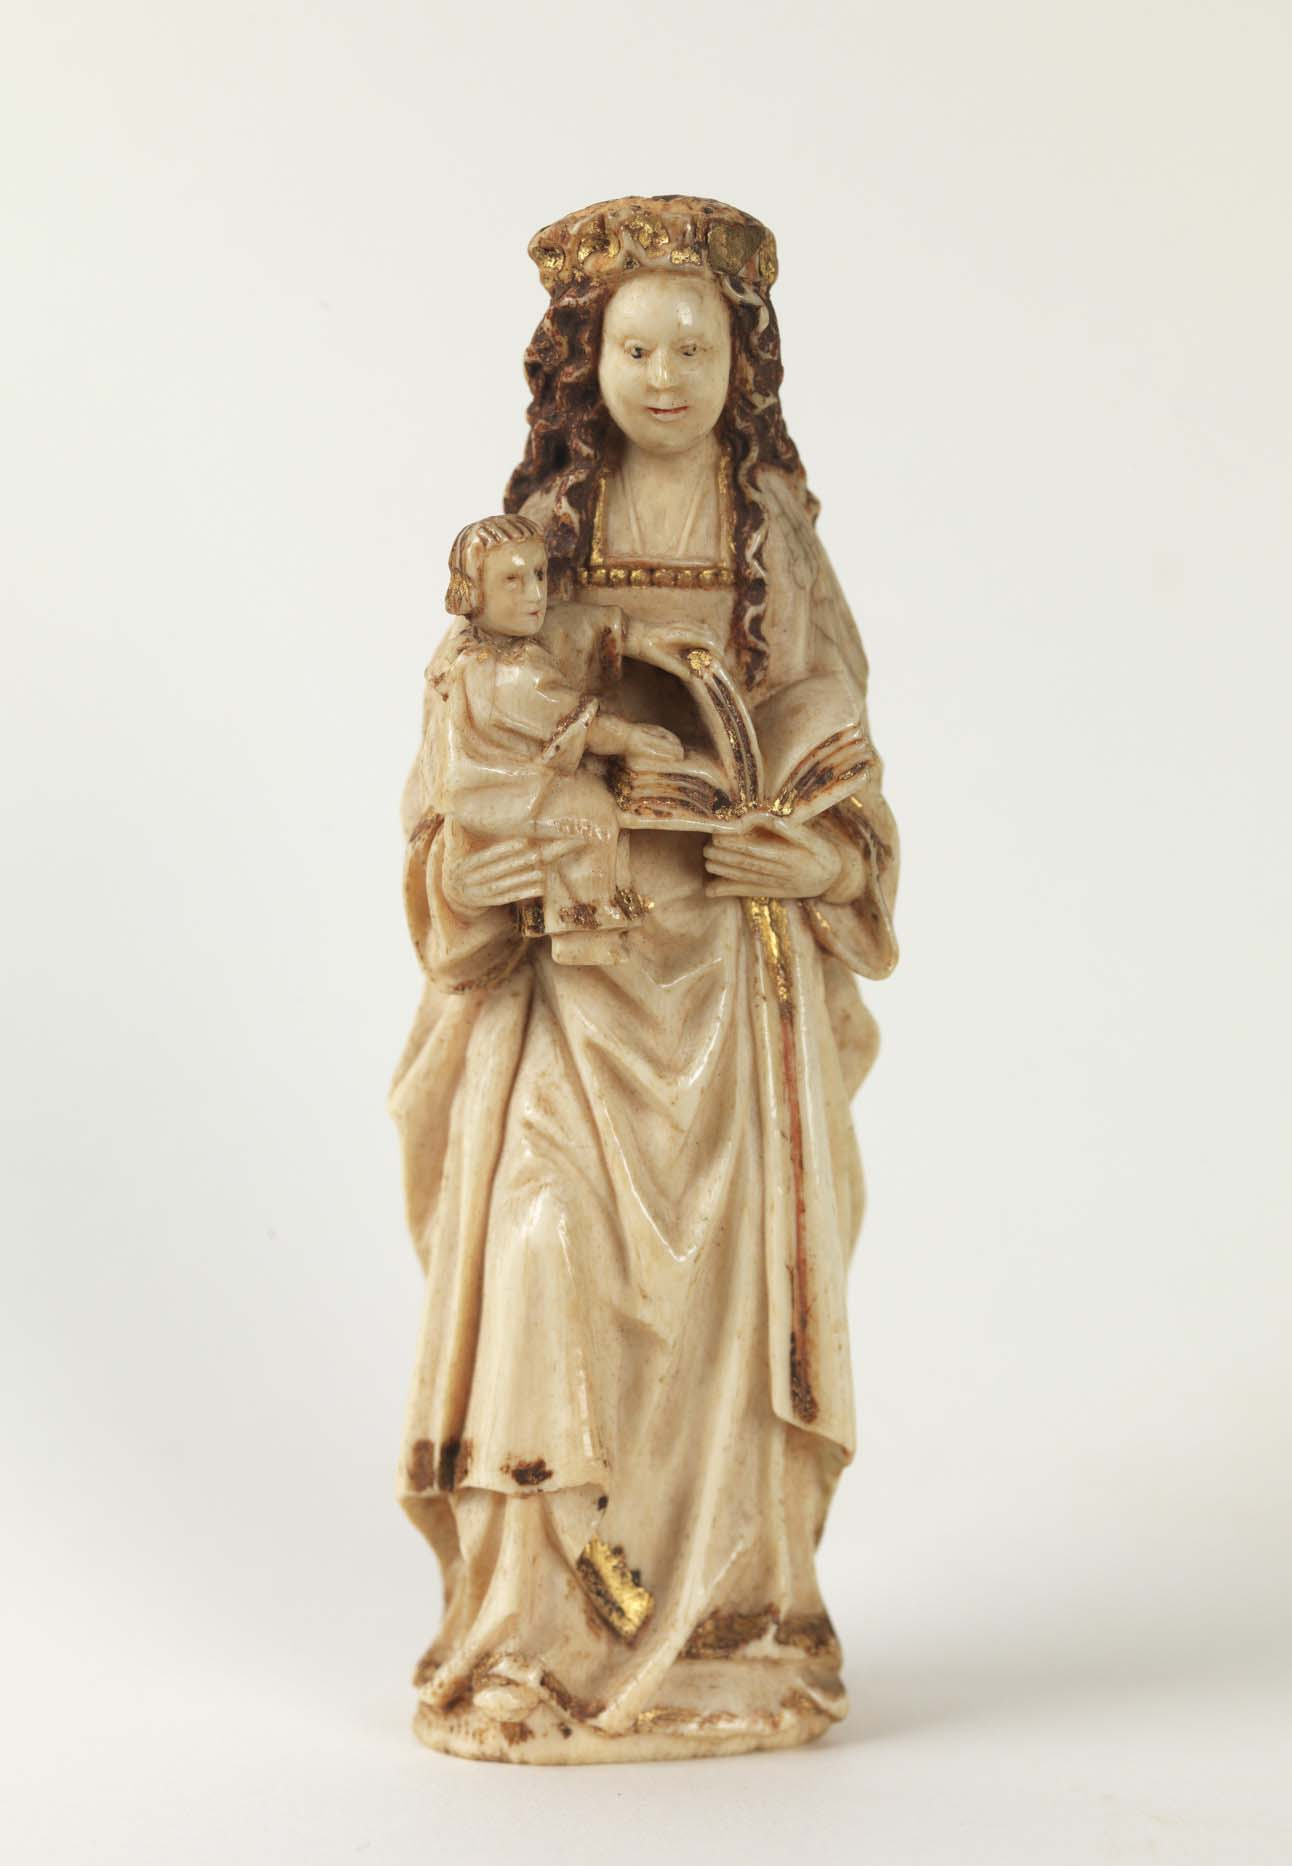 Unknown artist (Dutch). Virgin and Child, 1455–1475. Polychrome and gilt elephant ivory, 4 1/2 x 1 7/16 in. Gift of John Davis Hatch V, 78.2.4